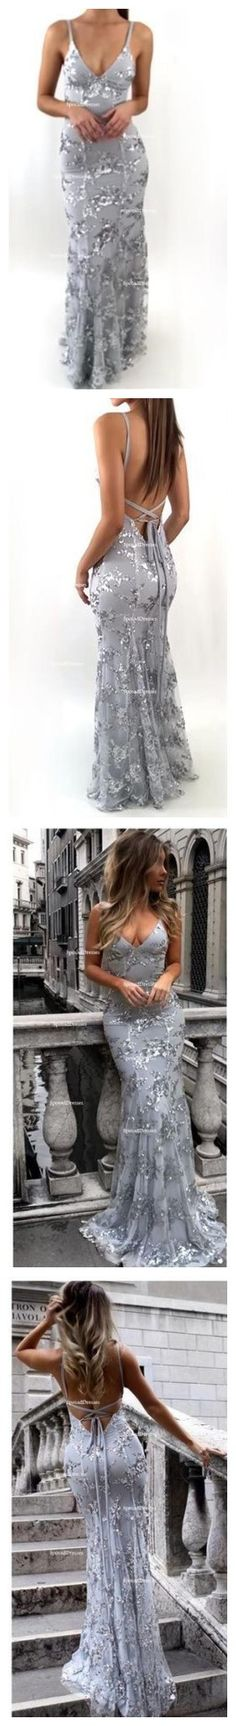 Sexy Backless Gray Sequin Lace Mermaid Long Evening Prom Dresses, Popular Cheap Long 2018 Party Prom Dresses, 17264